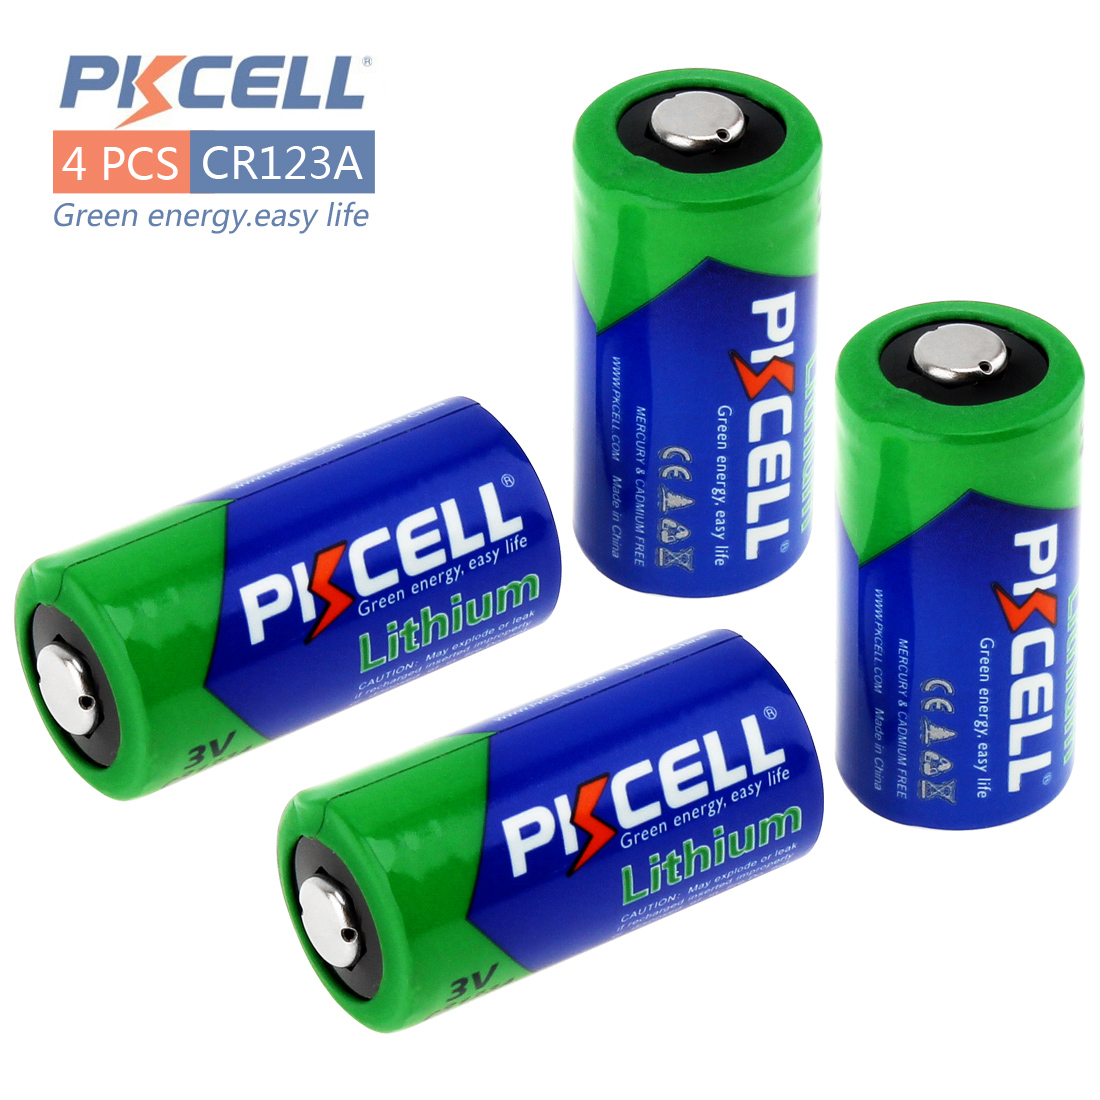 4pcs PKCELL 2/3A Battery CR123A CR123 CR 123 CR17335 123A CR17345(CR17335) 16340 3V Lithium Battery Batteries for Carmera new 2 pcs 16340 cr123a 17335 1000 mah battery 3v cr123a battery charger digital camera made of special battery